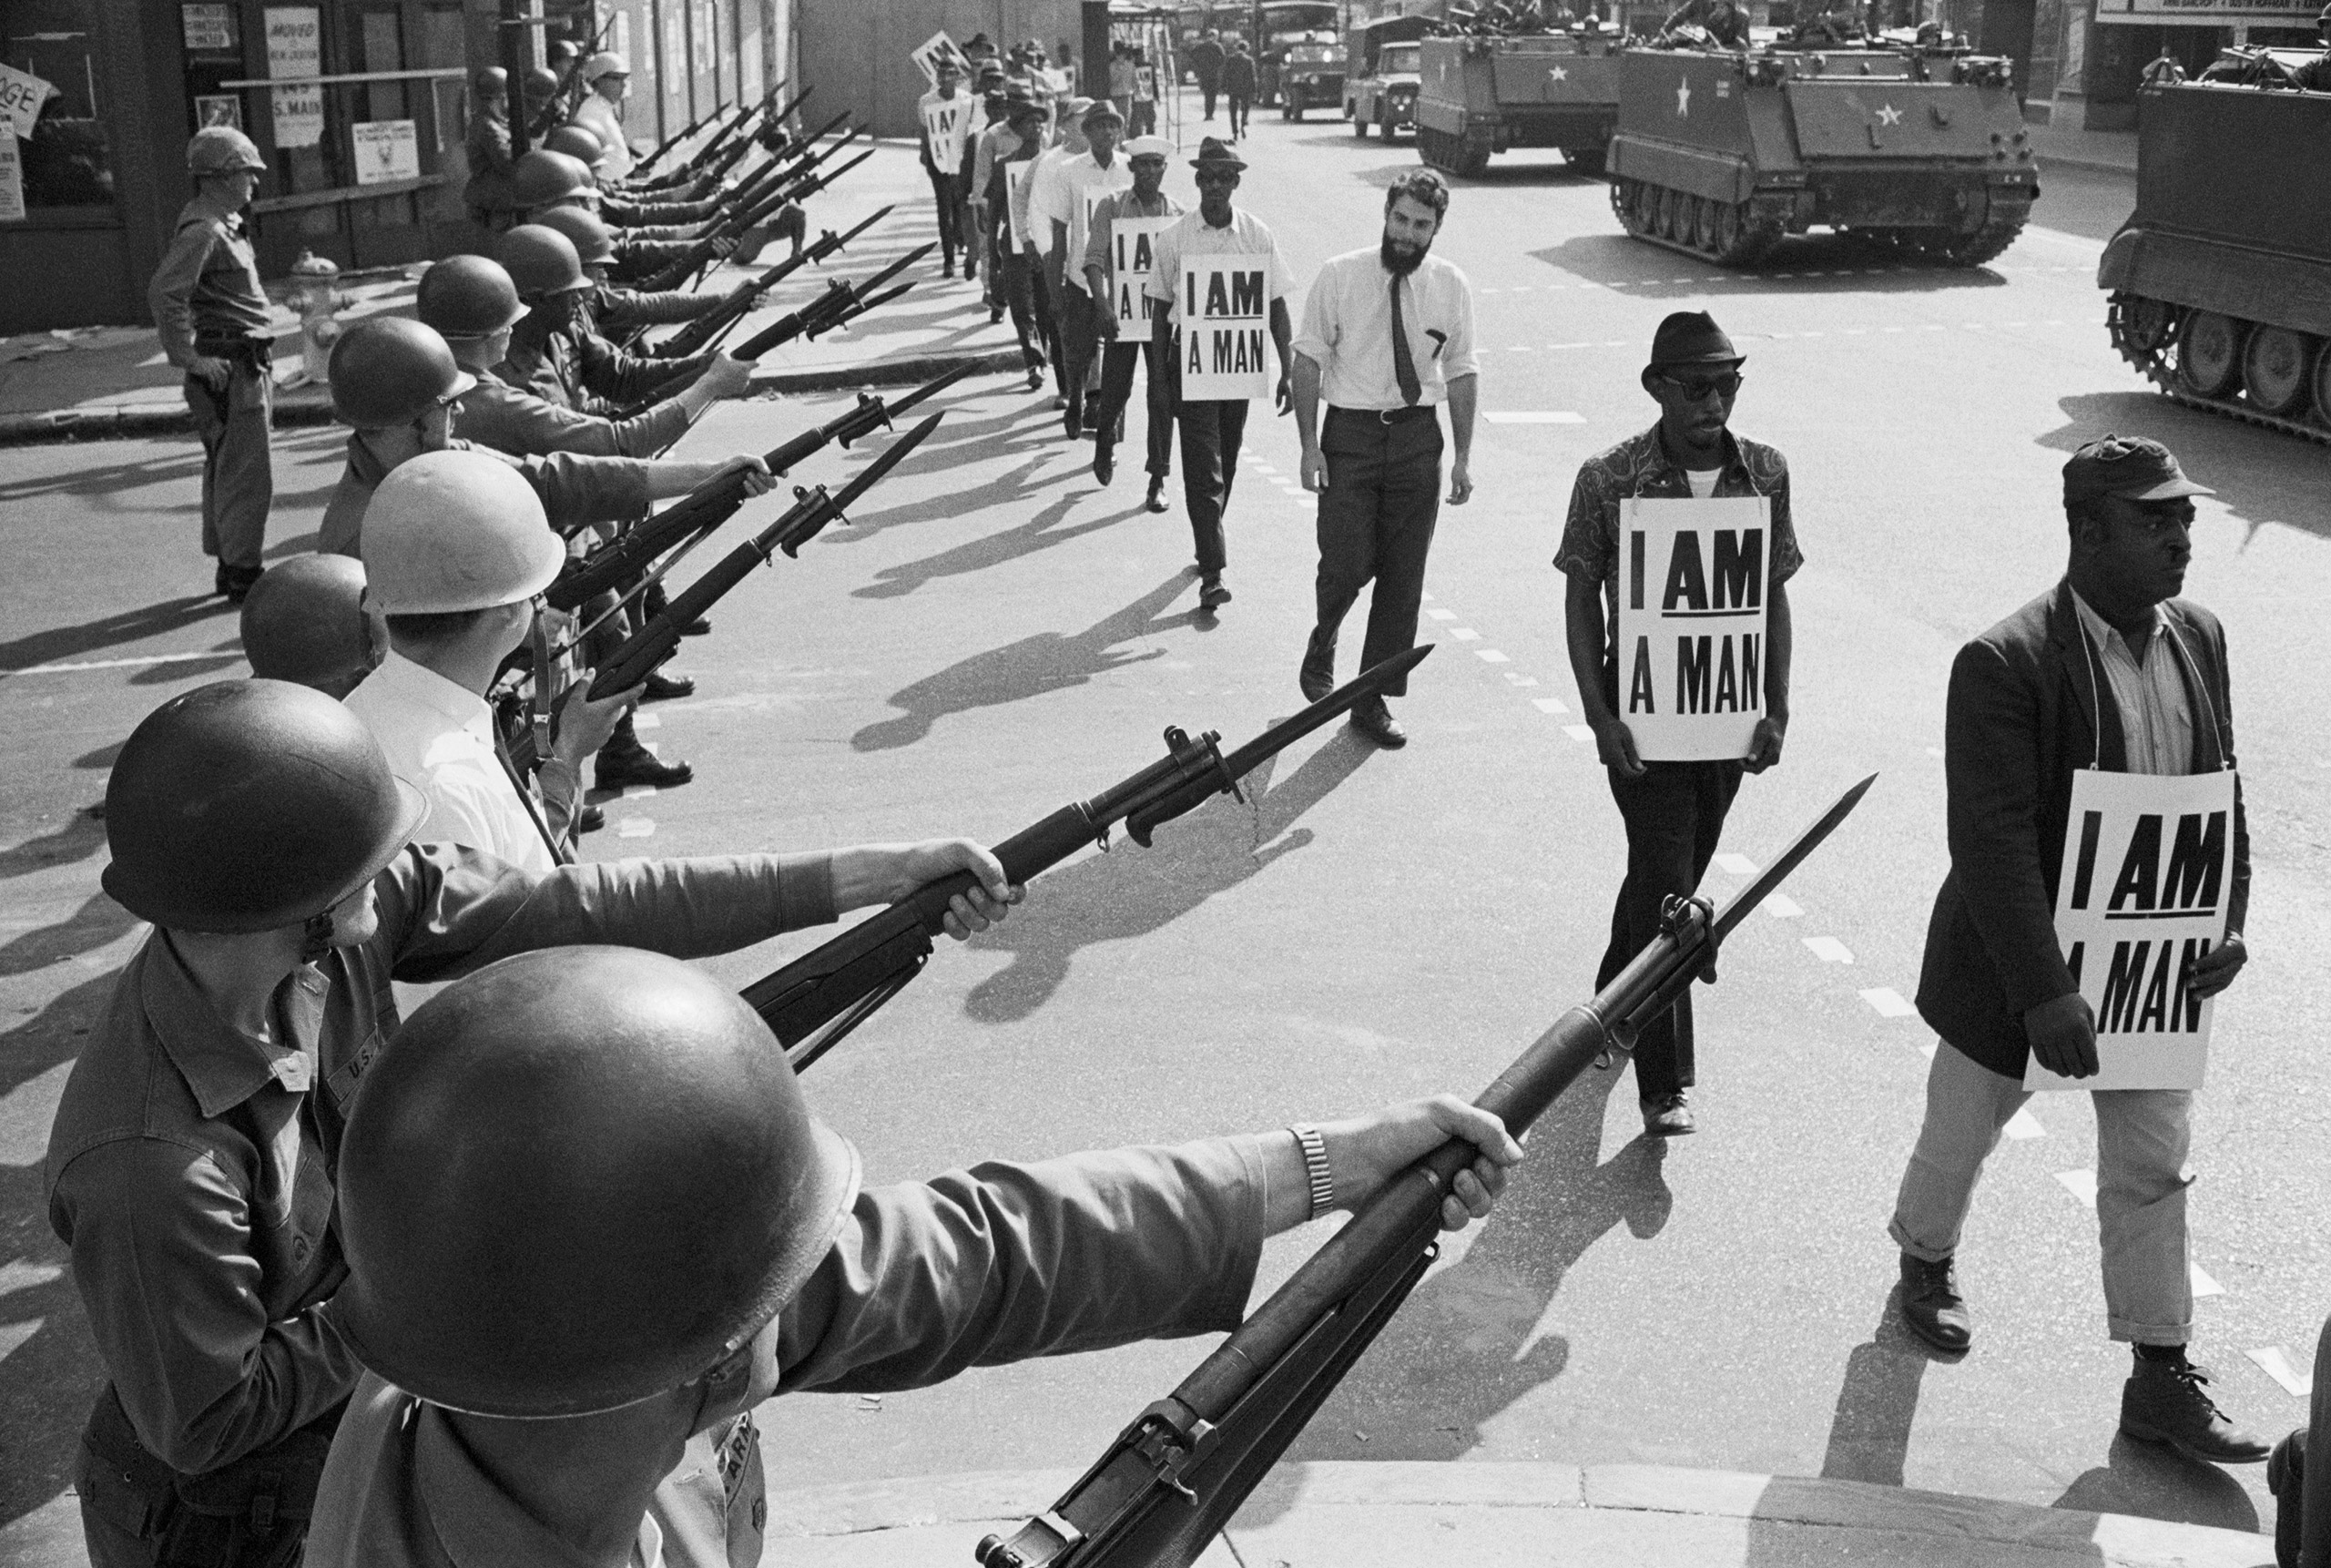 U.S. National Guard troops block off Beale Street as Civil Rights marchers wearing placards reading,  I AM A MAN  pass by on March 29, 1968. It was the third consecutive march held by the group in as many days. Rev. Martin Luther King, Jr., who had left town after the first march, would soon return and be assassinated.